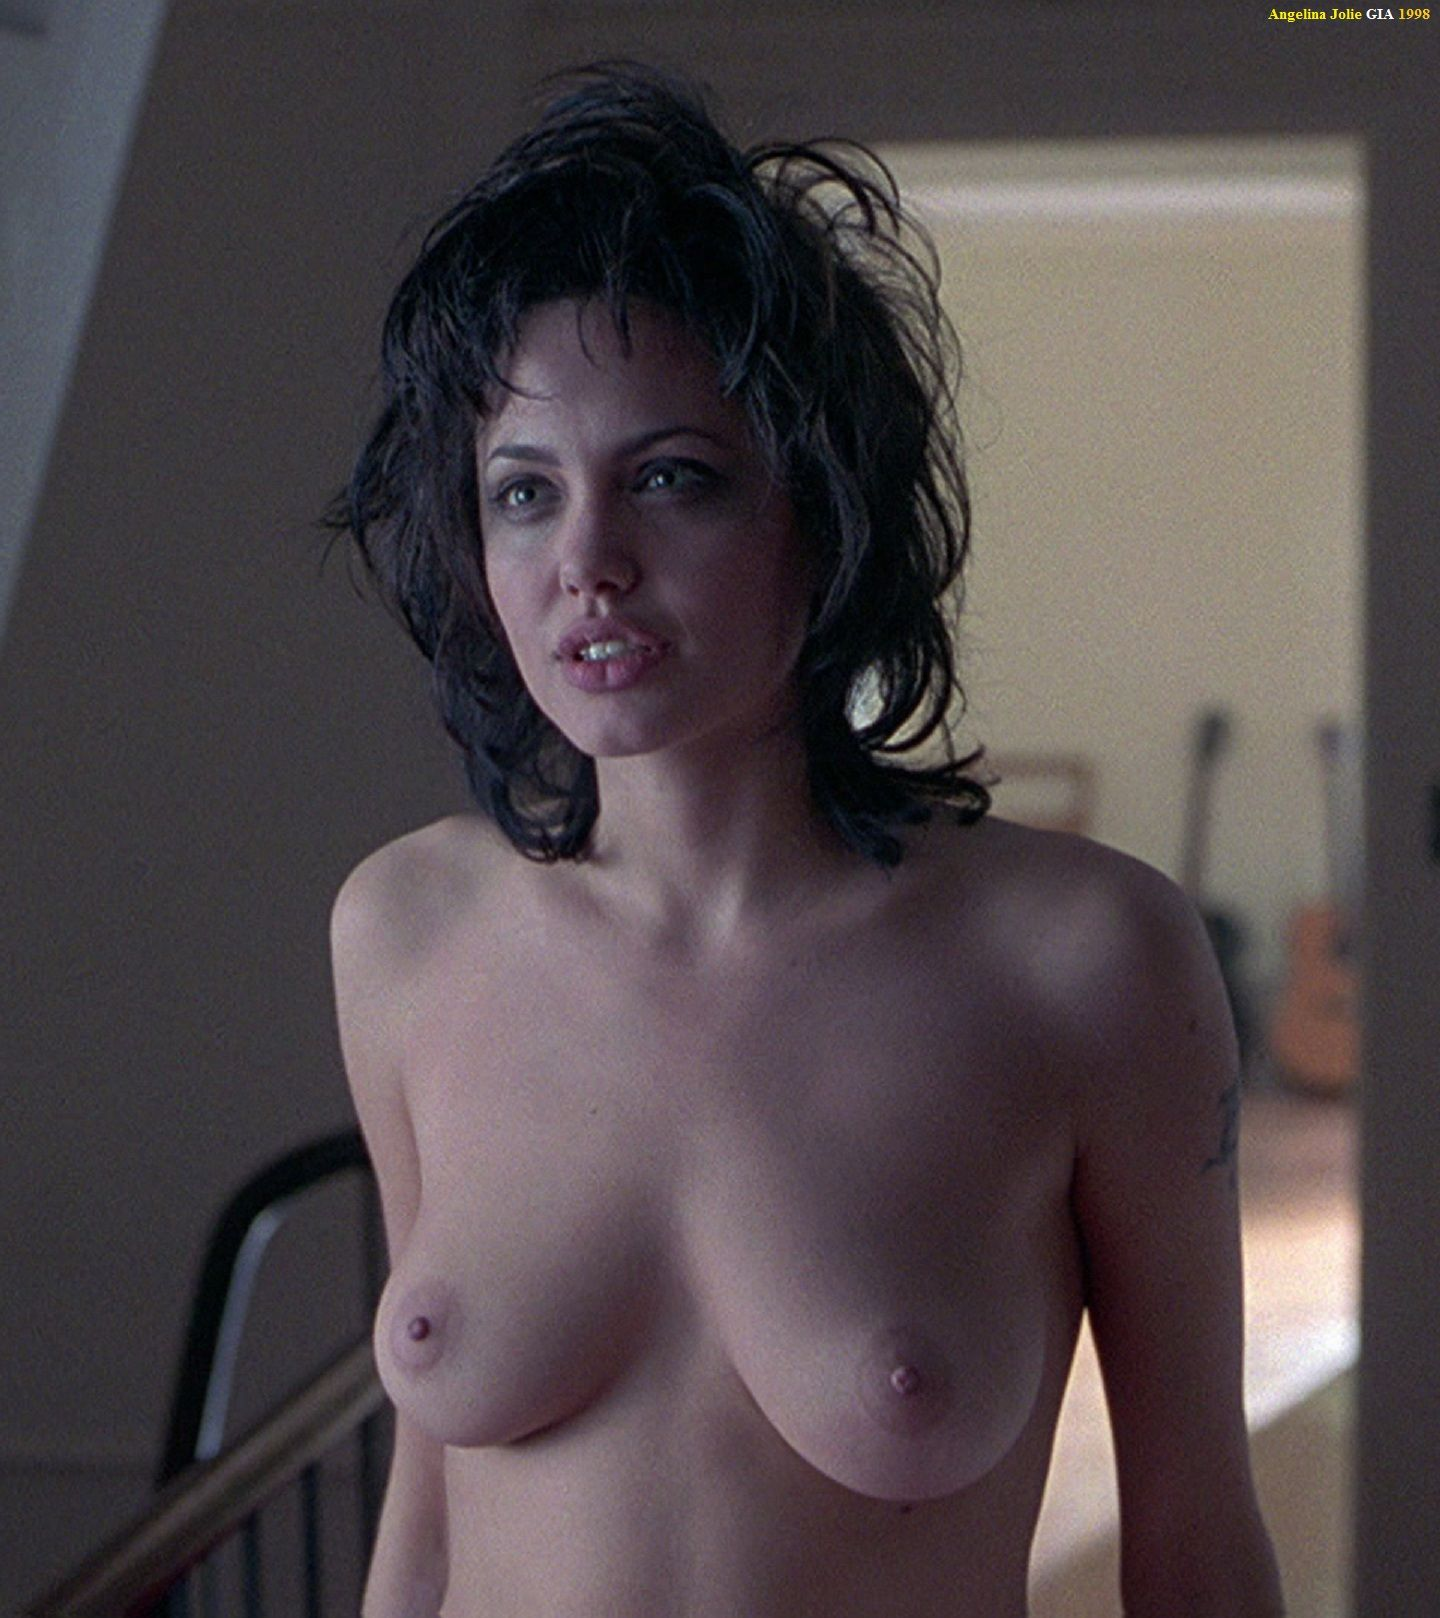 Angelina Jolie Naked Taking Lives angelina jolie real porn video - 23 new porn photos. comments: 3